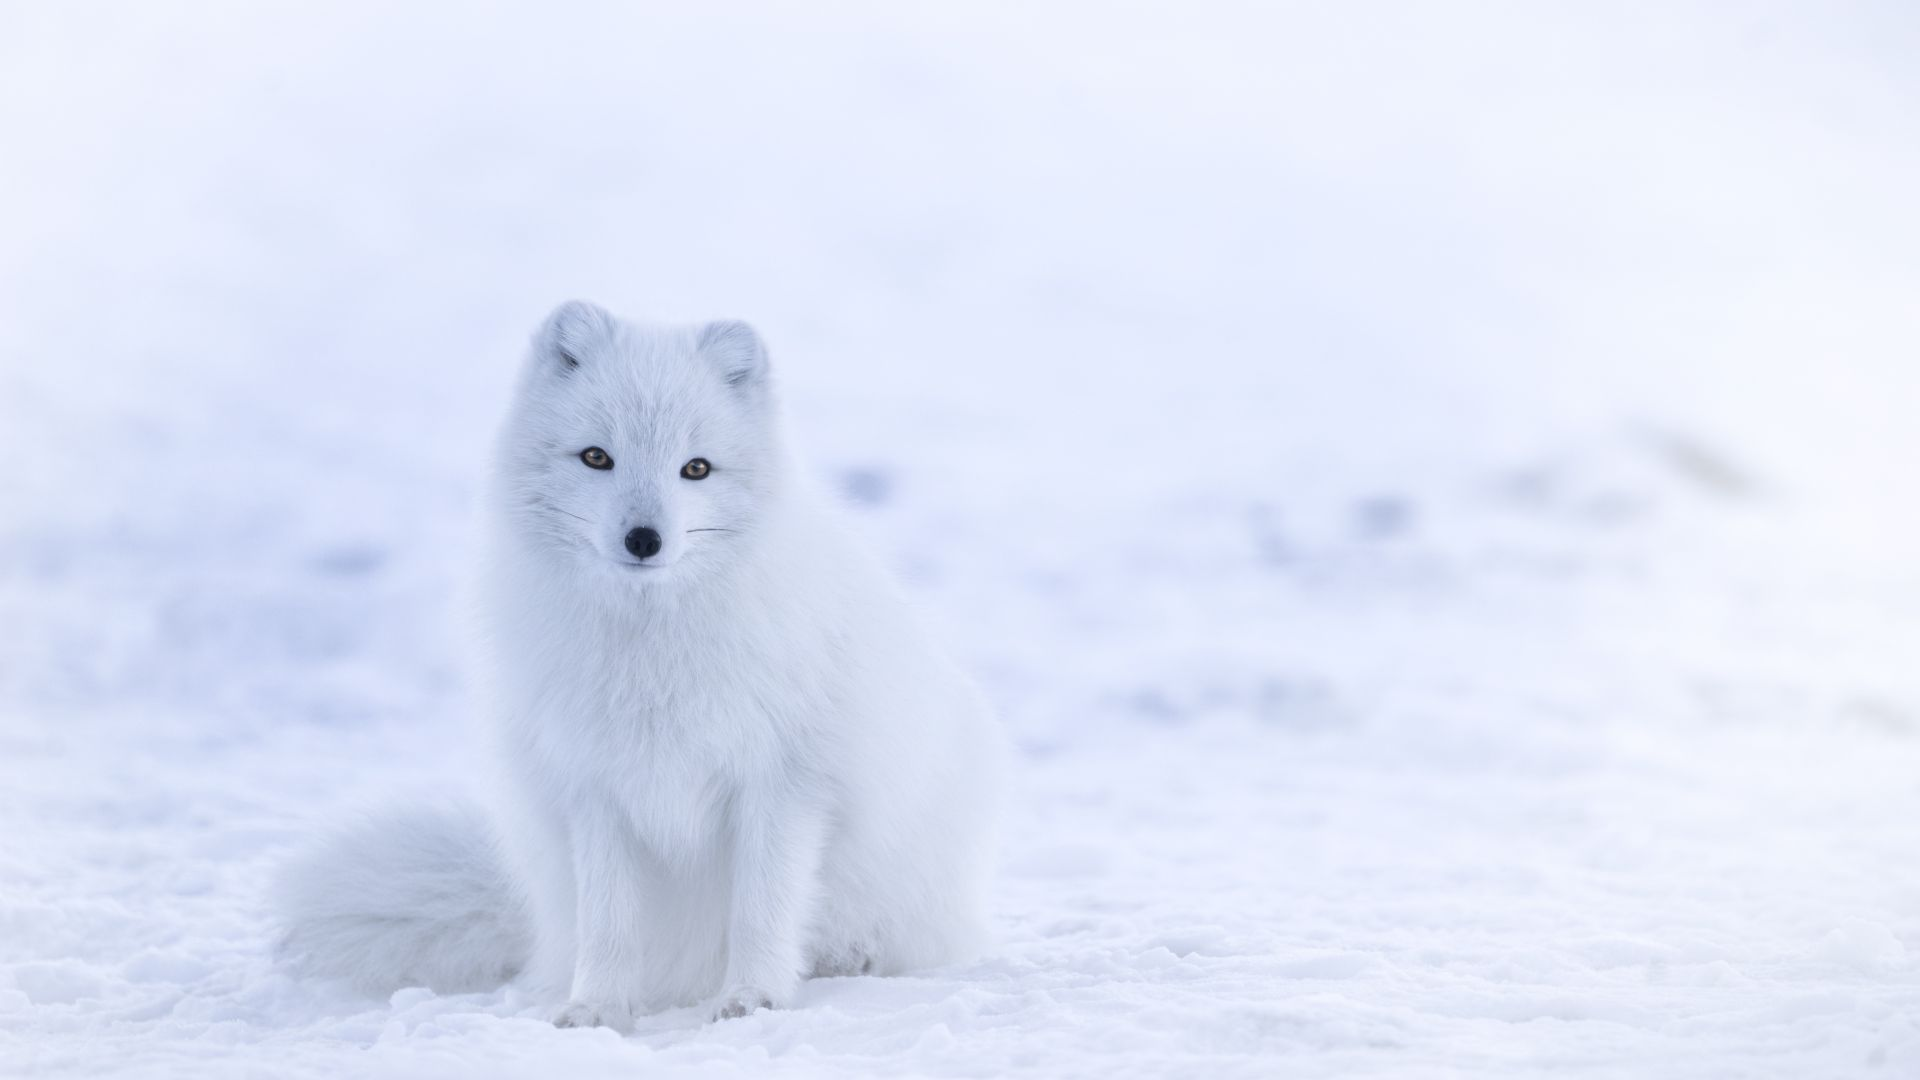 Cute Dog Iphone Wallpaper Wallpaper Arctic Fox Cute Animals Winter Snow White